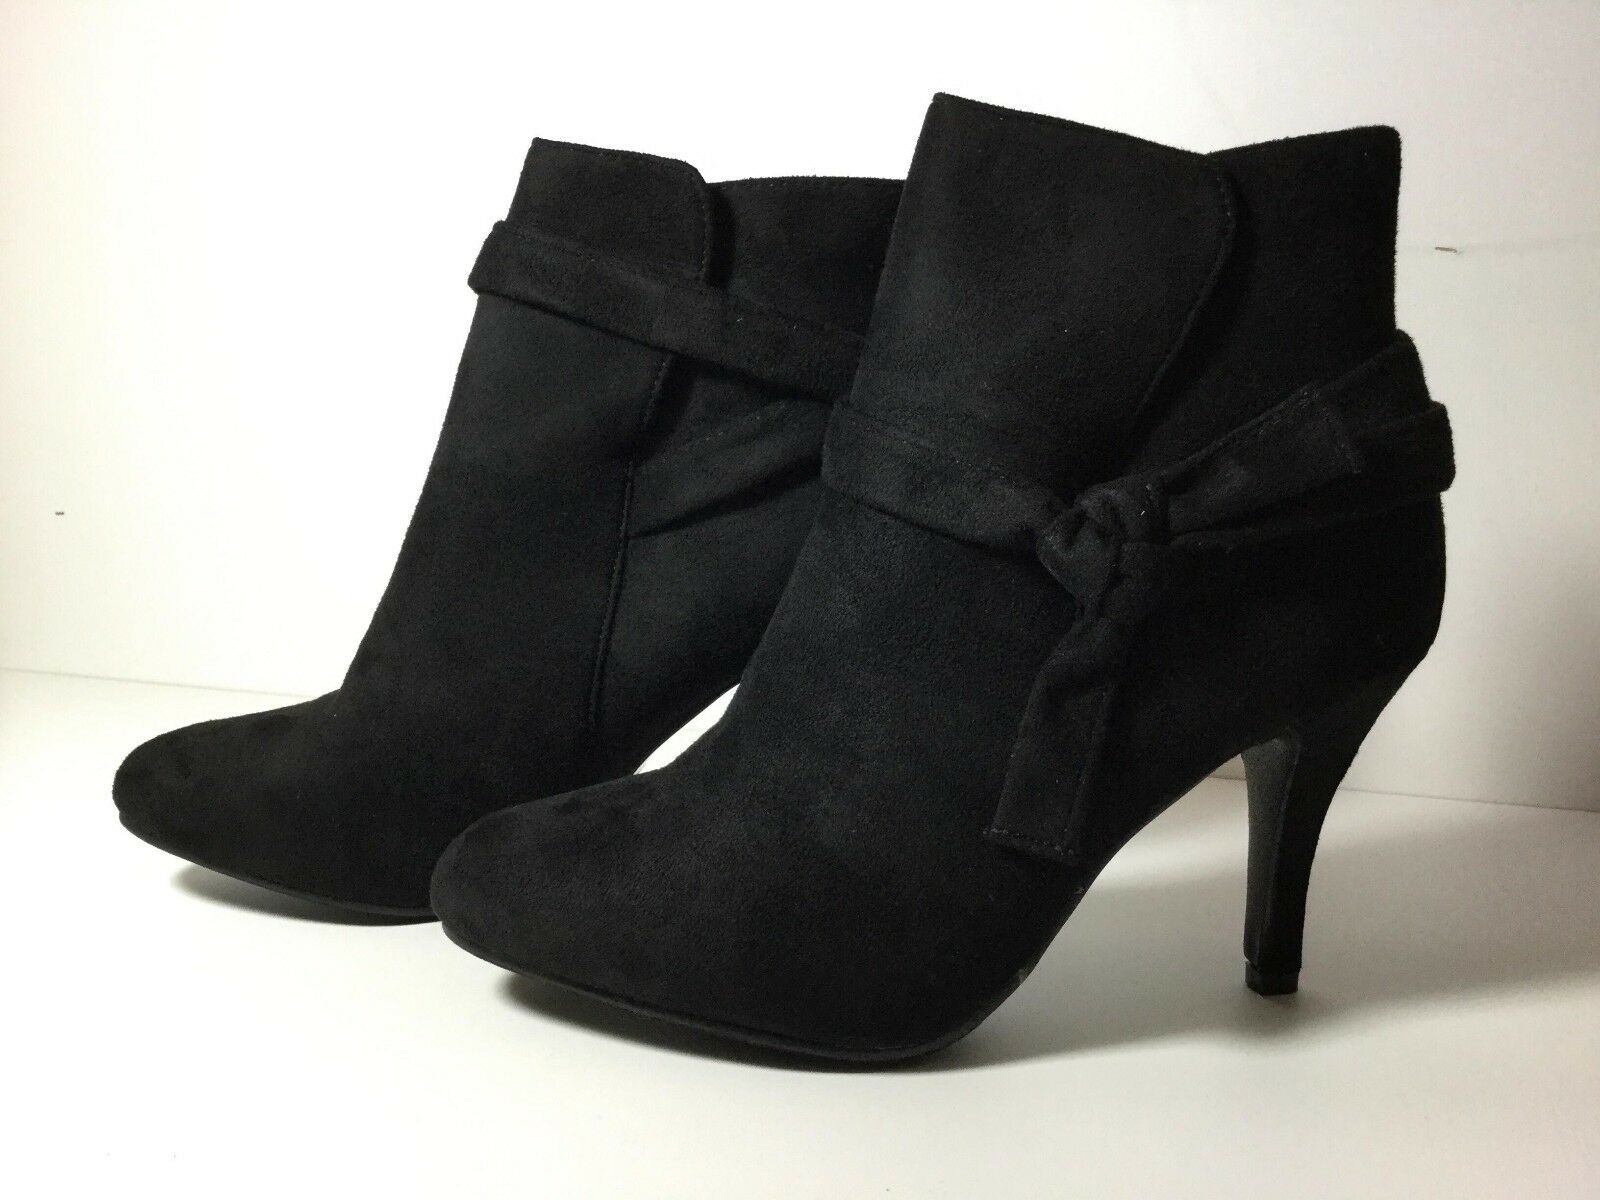 Final Fashion Women suede ankle high bow knot skinny autumn winter heels shoes